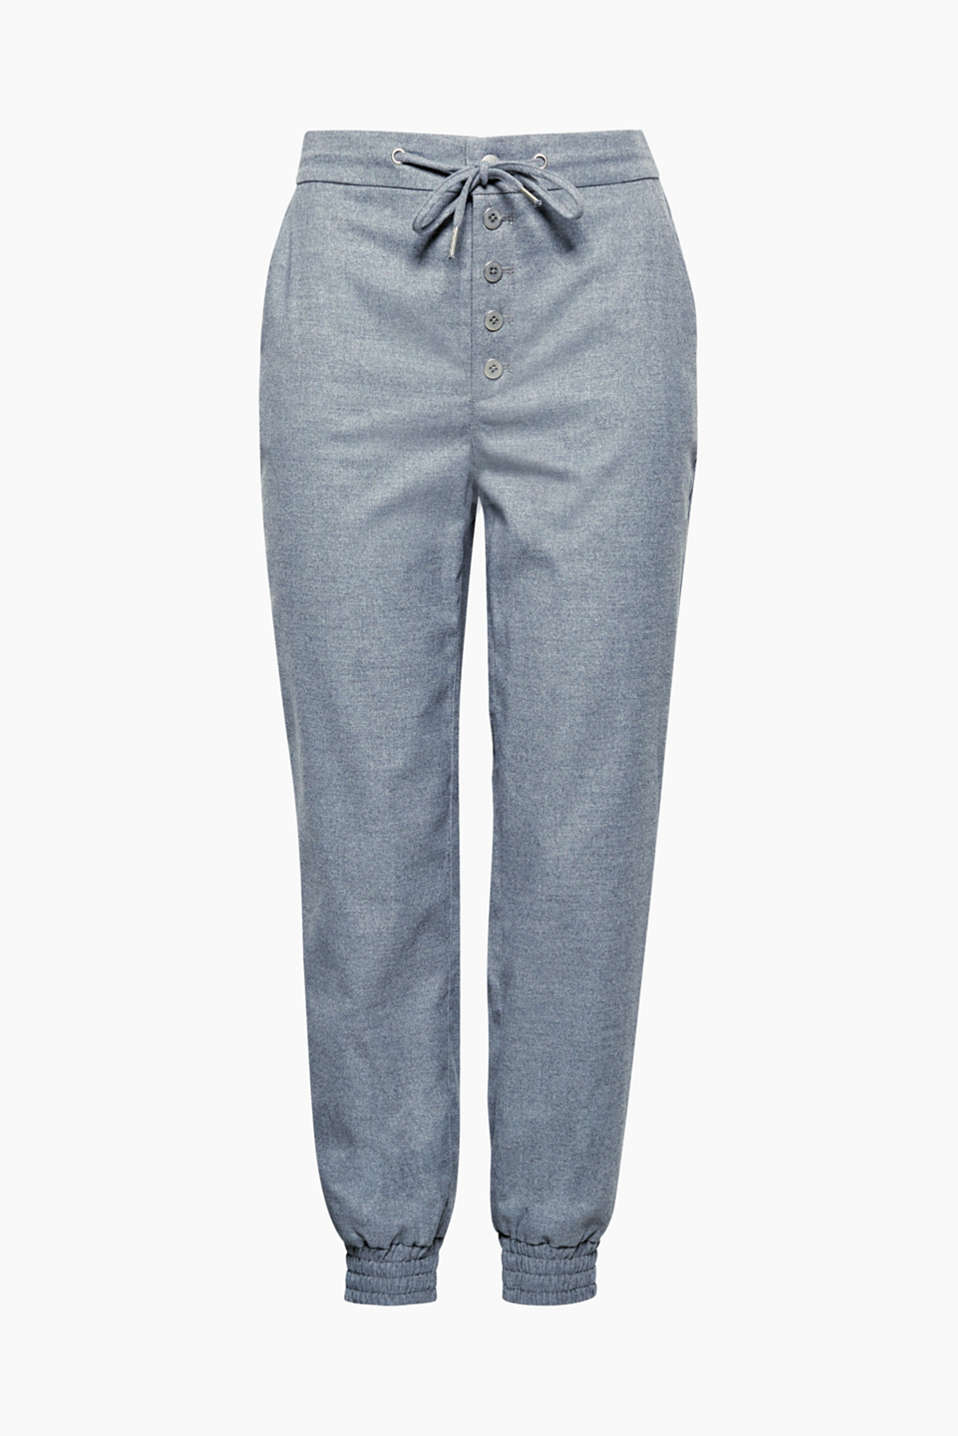 Relaxed fit, stylish details: soft flannel tracksuit bottoms with a stunning button placket